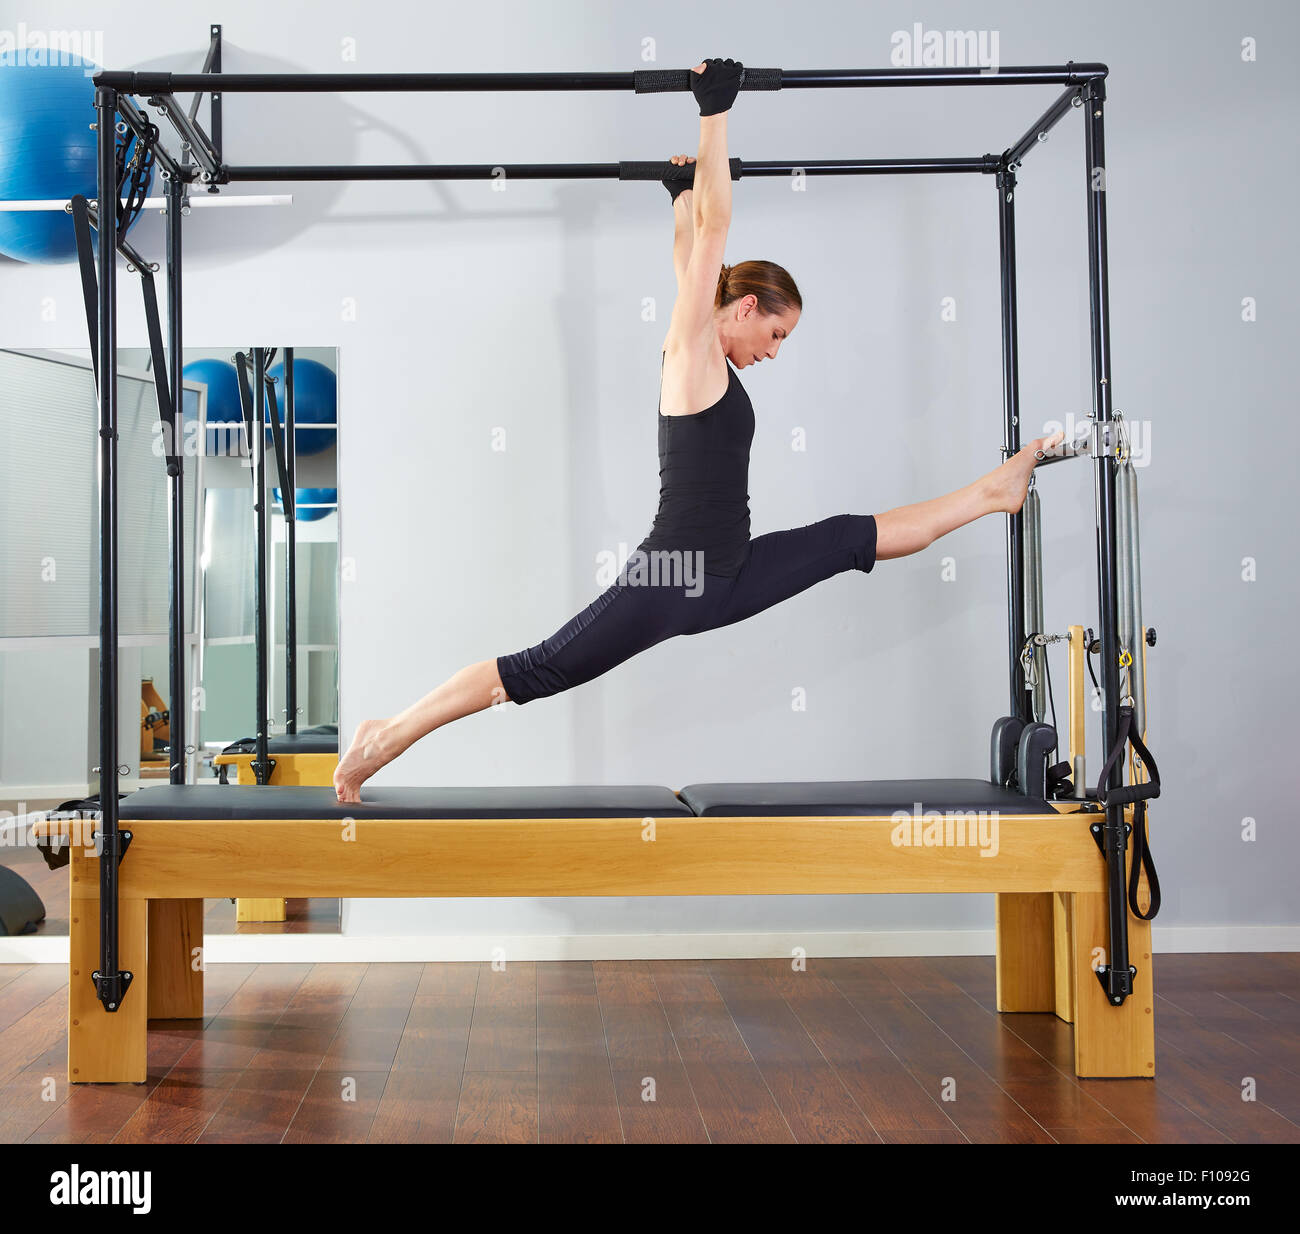 Woman Pilates Chair Exercises Fitness Stock Photo: Legs Split Stock Photos & Legs Split Stock Images